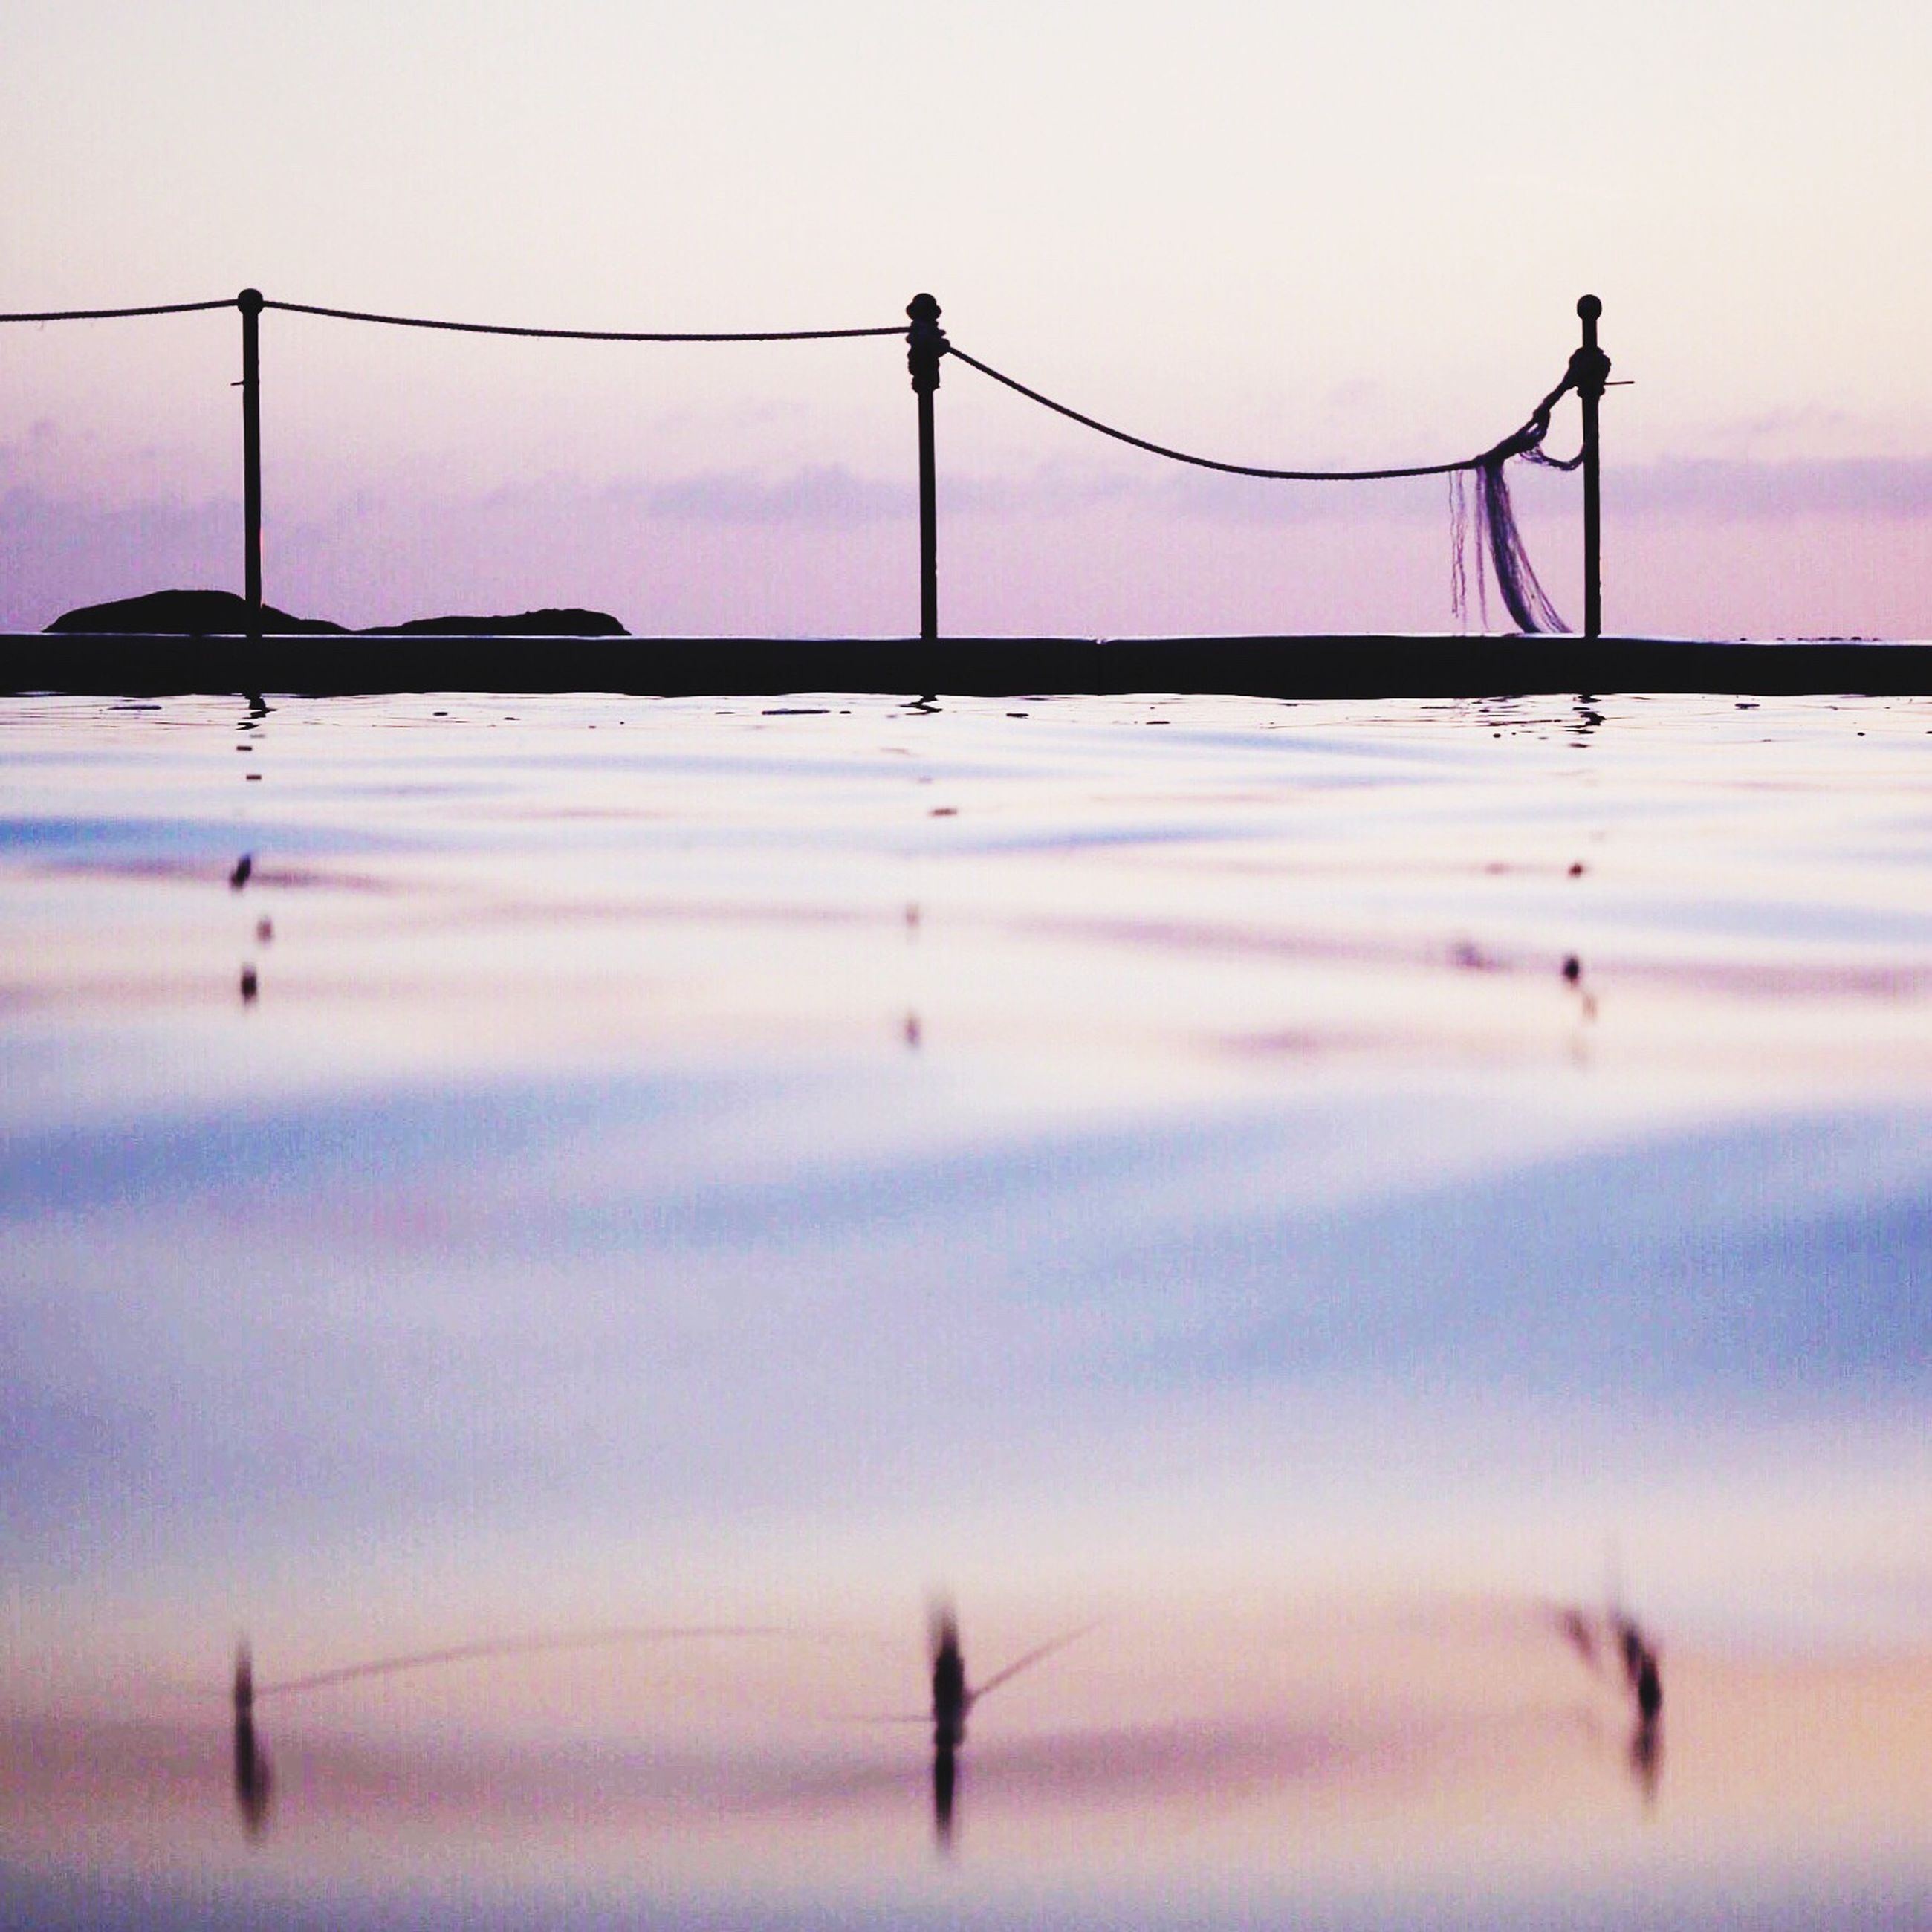 water, sky, nature, outdoors, day, no people, beauty in nature, tranquility, sunset, sea, scenics